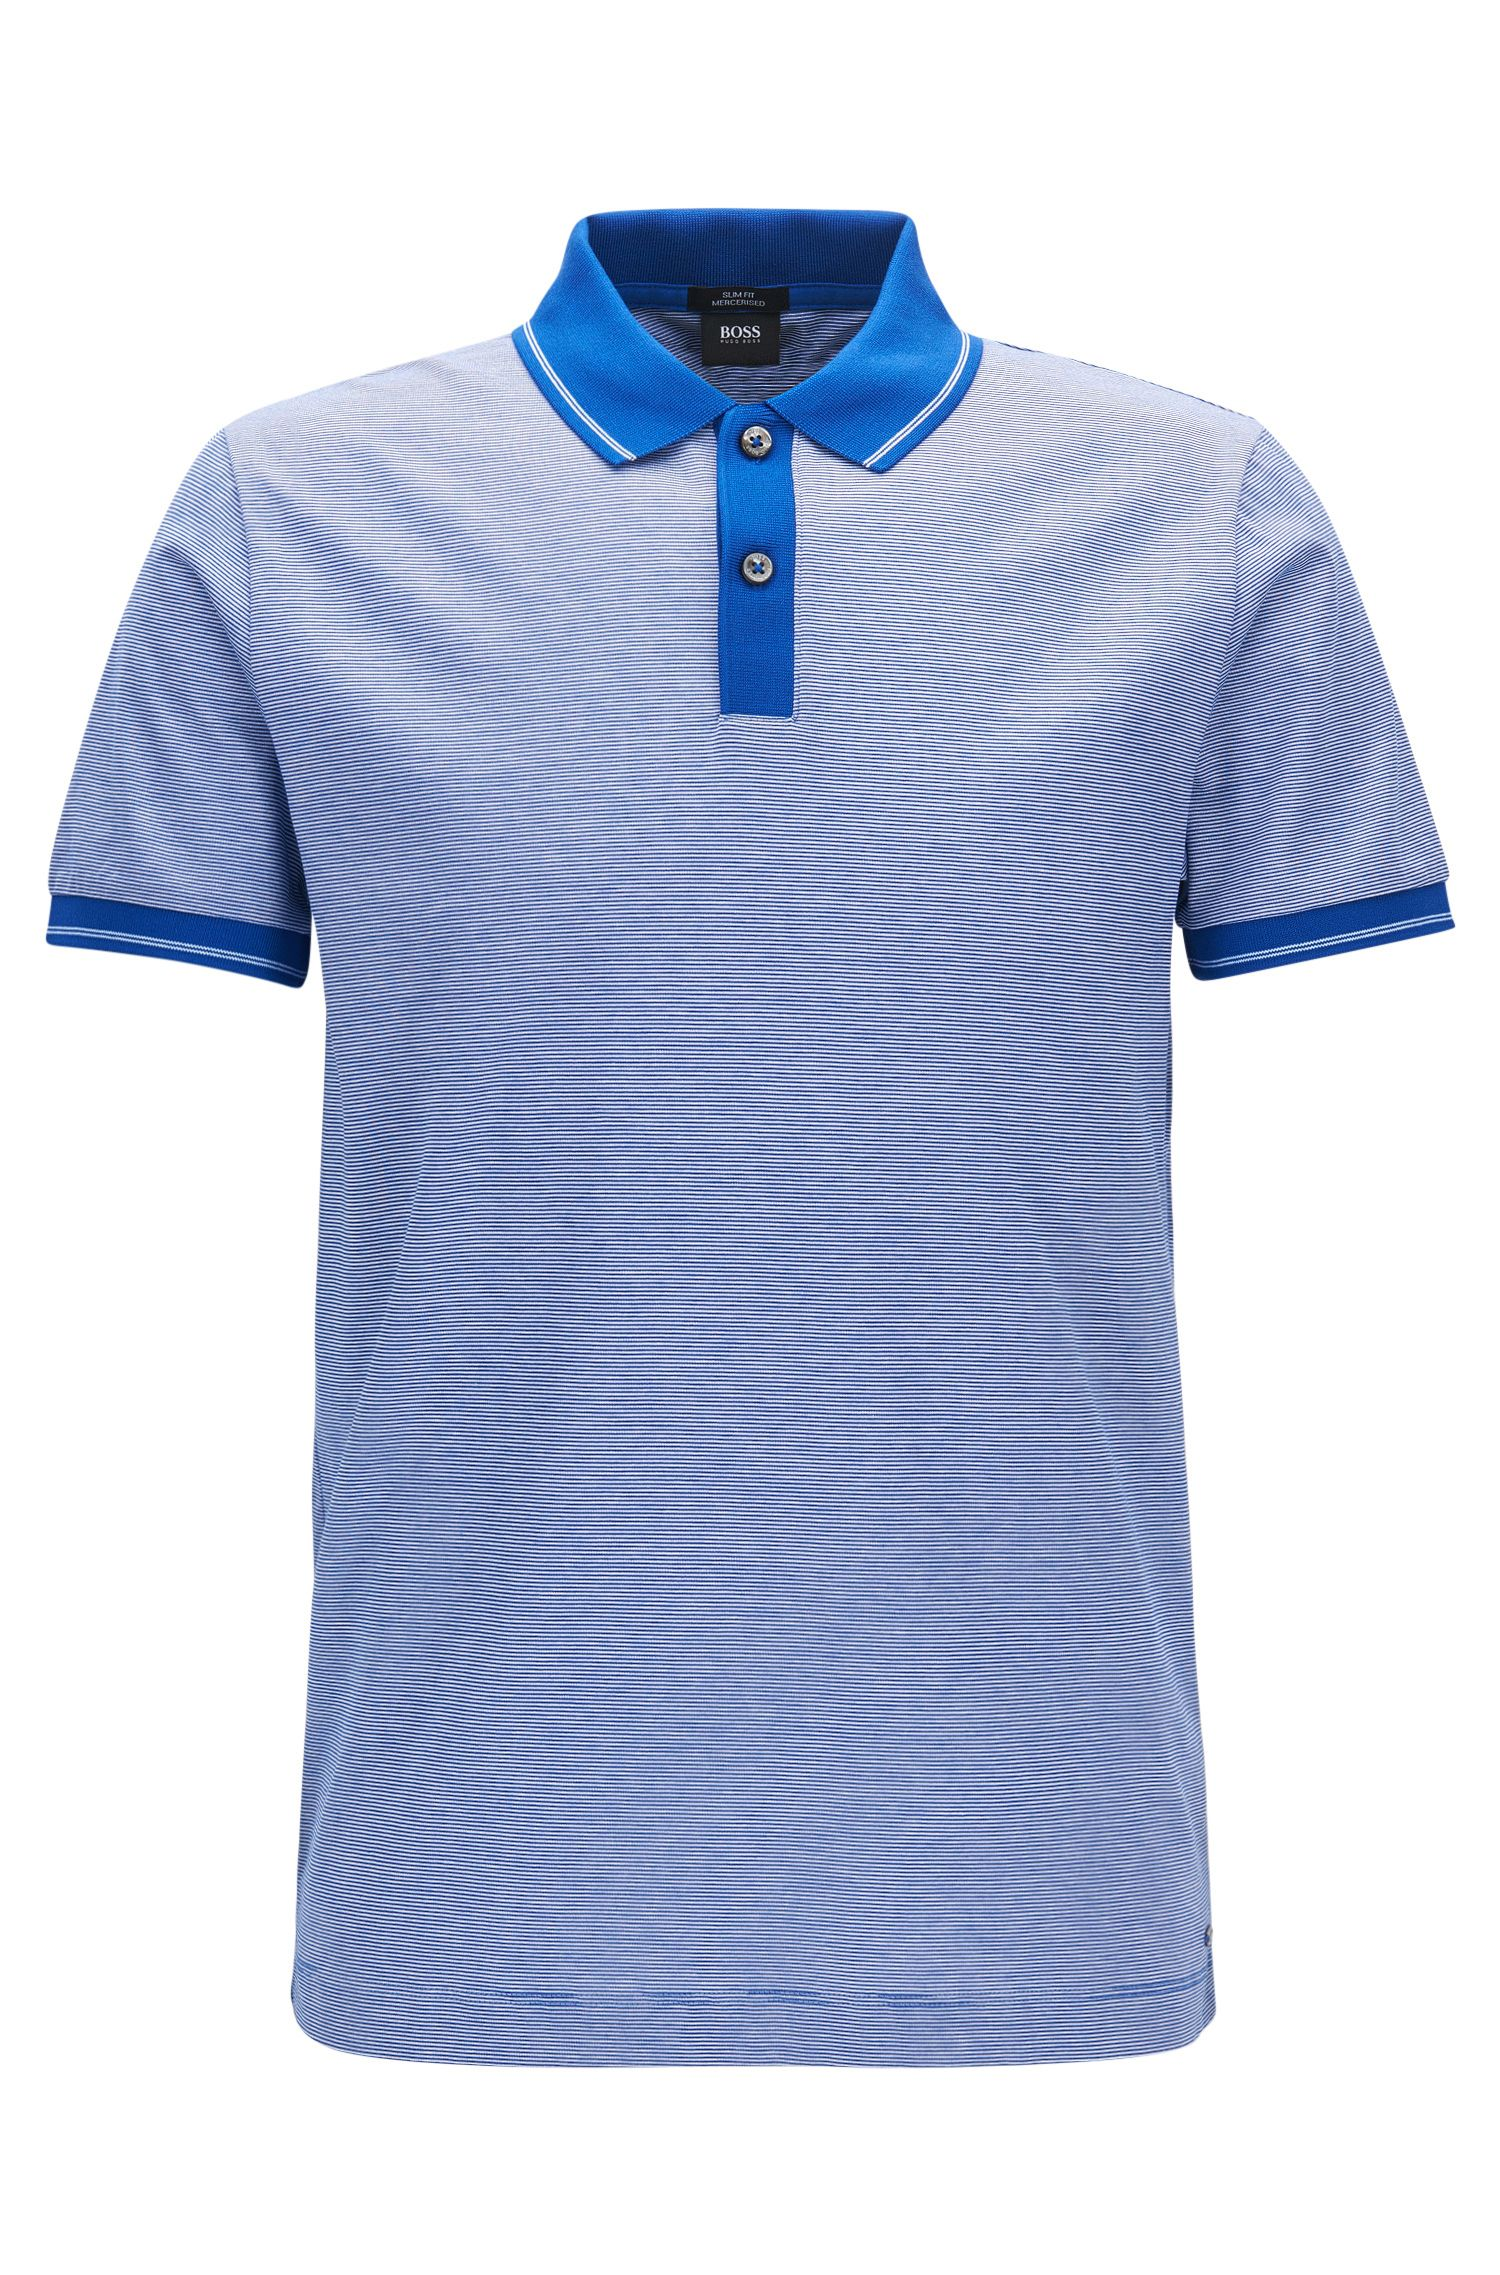 'Phillipson' | Slim Fit, Mercerized Cotton Polo Shirt